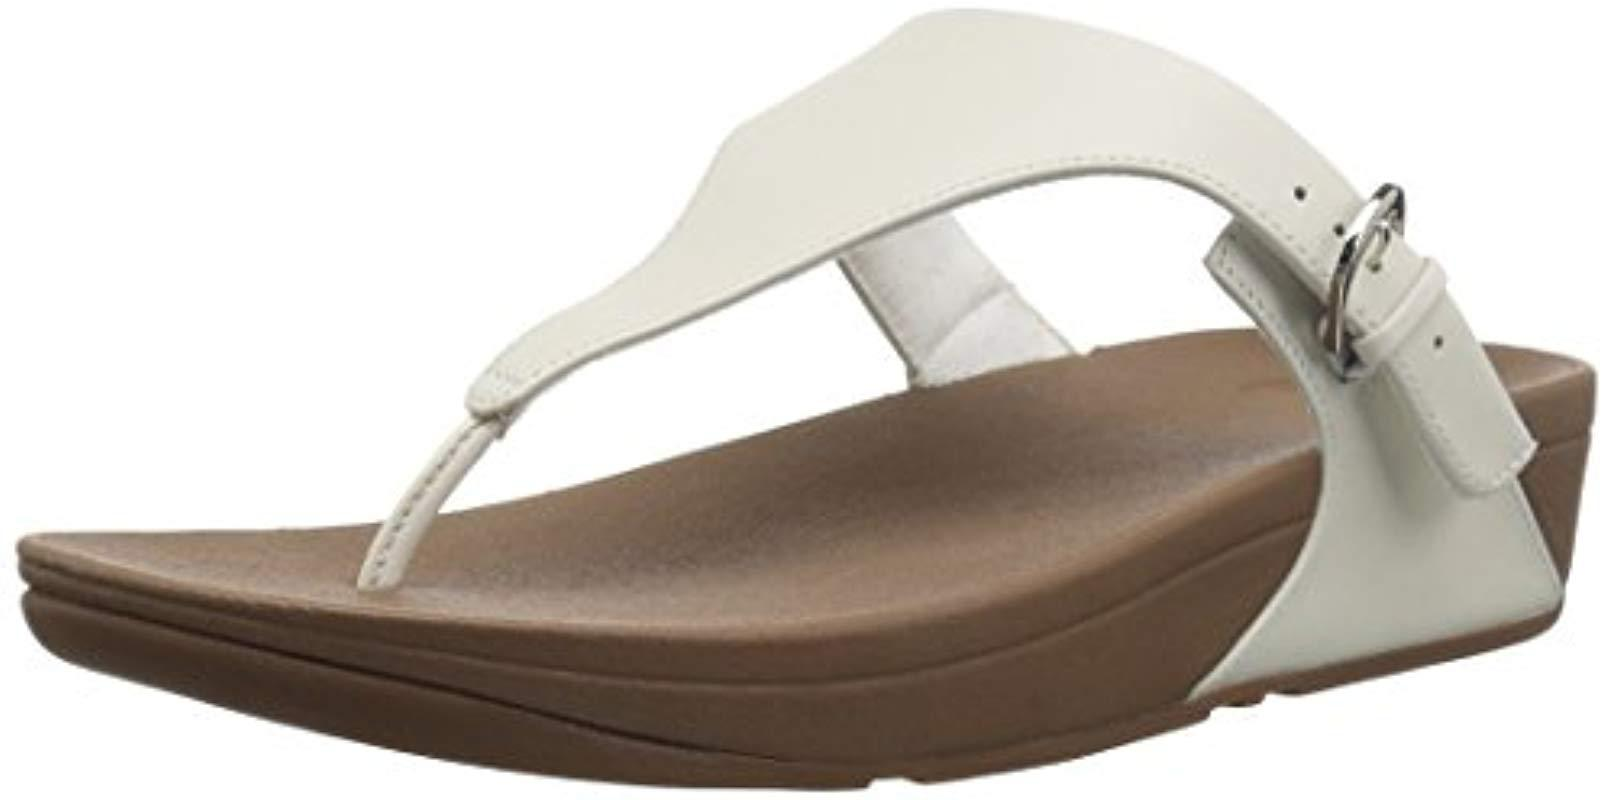 0be53b441 Fitflop Skinny Toe Thong Leather Heels Sandals in White - Lyst